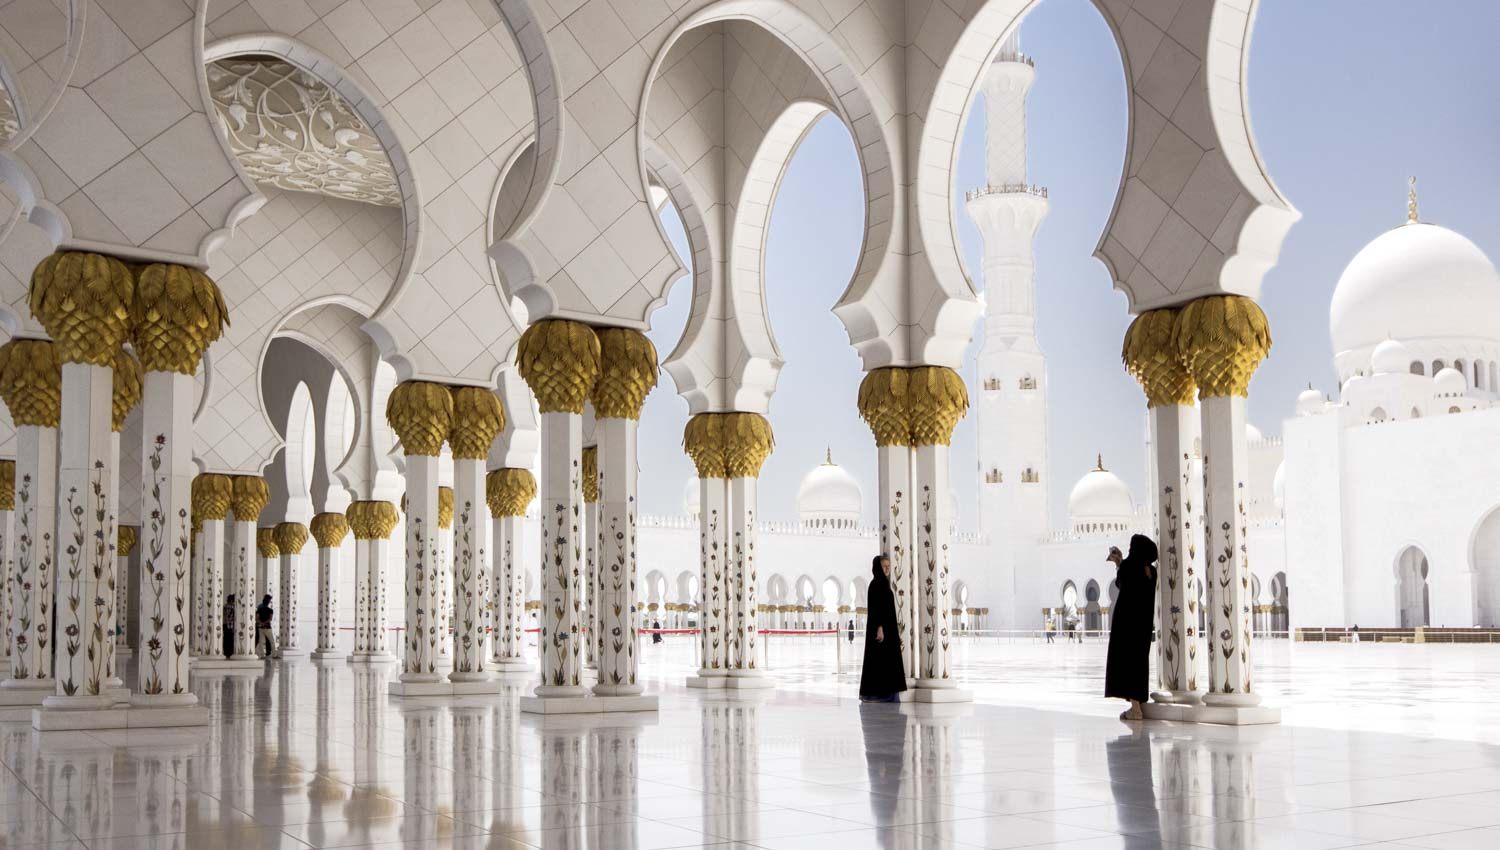 It was built to symbolize Islamic diversity